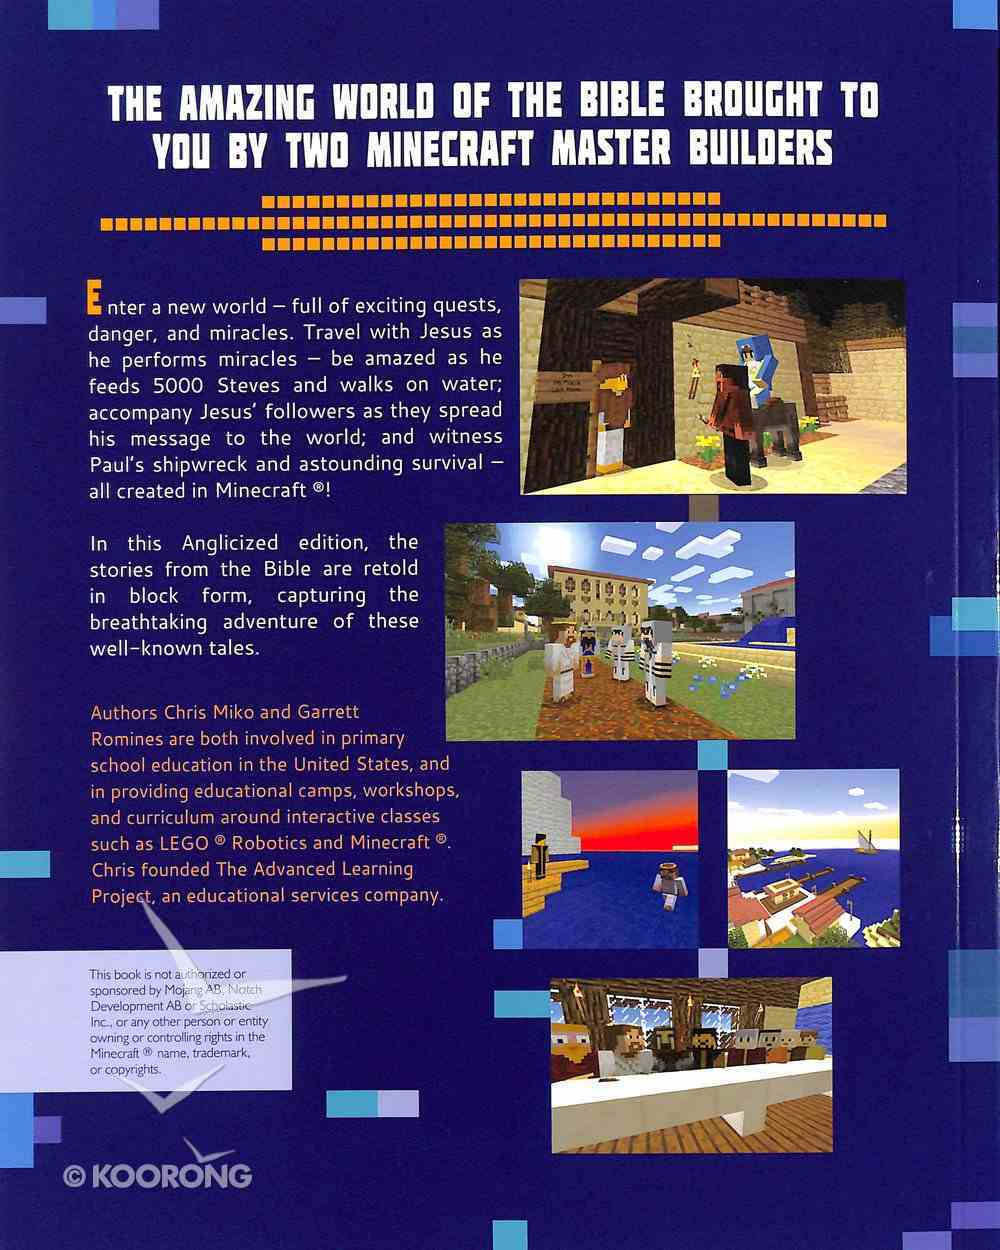 The Unofficial Bible For Minecrafters (2 Volumes) Paperback